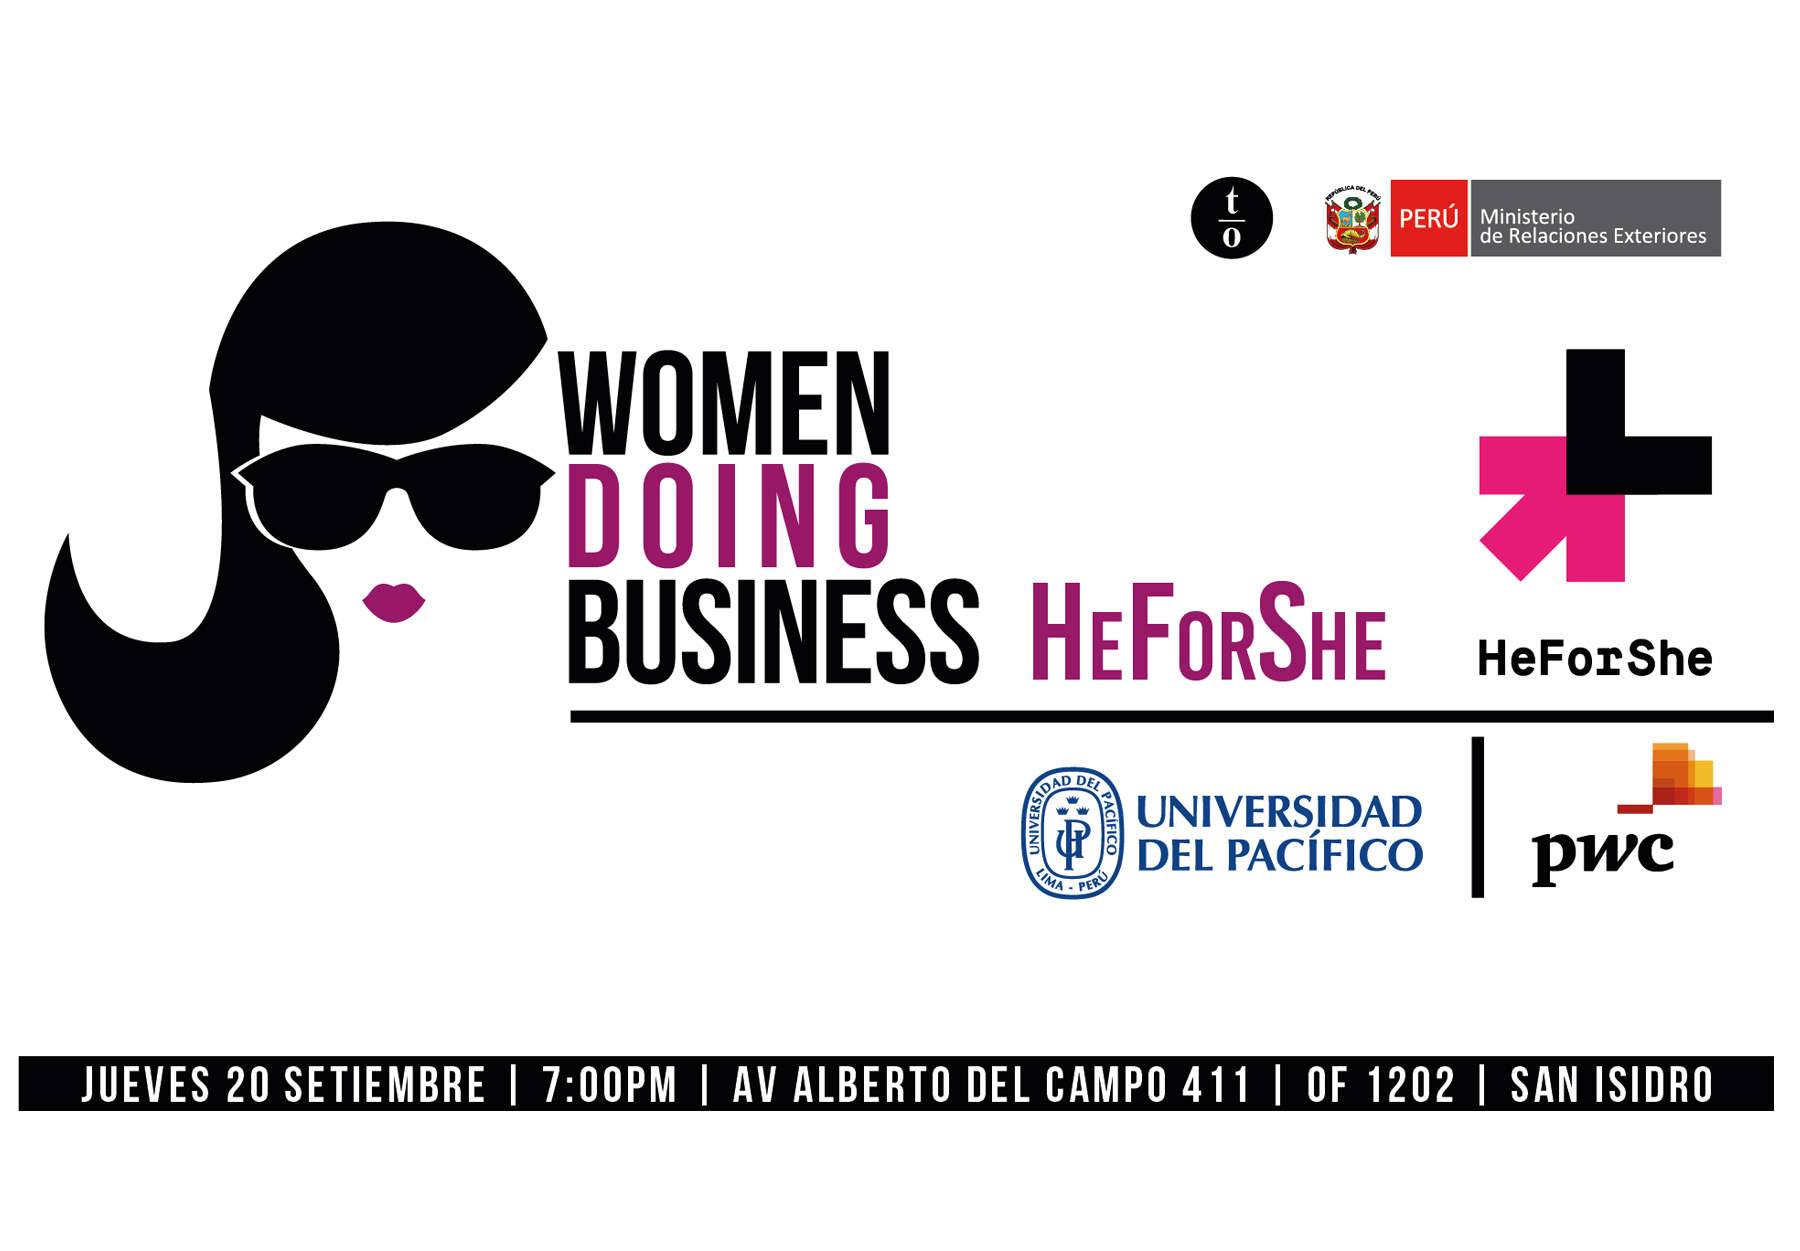 WOMEN-DOING-BUSINESS-HeForShe